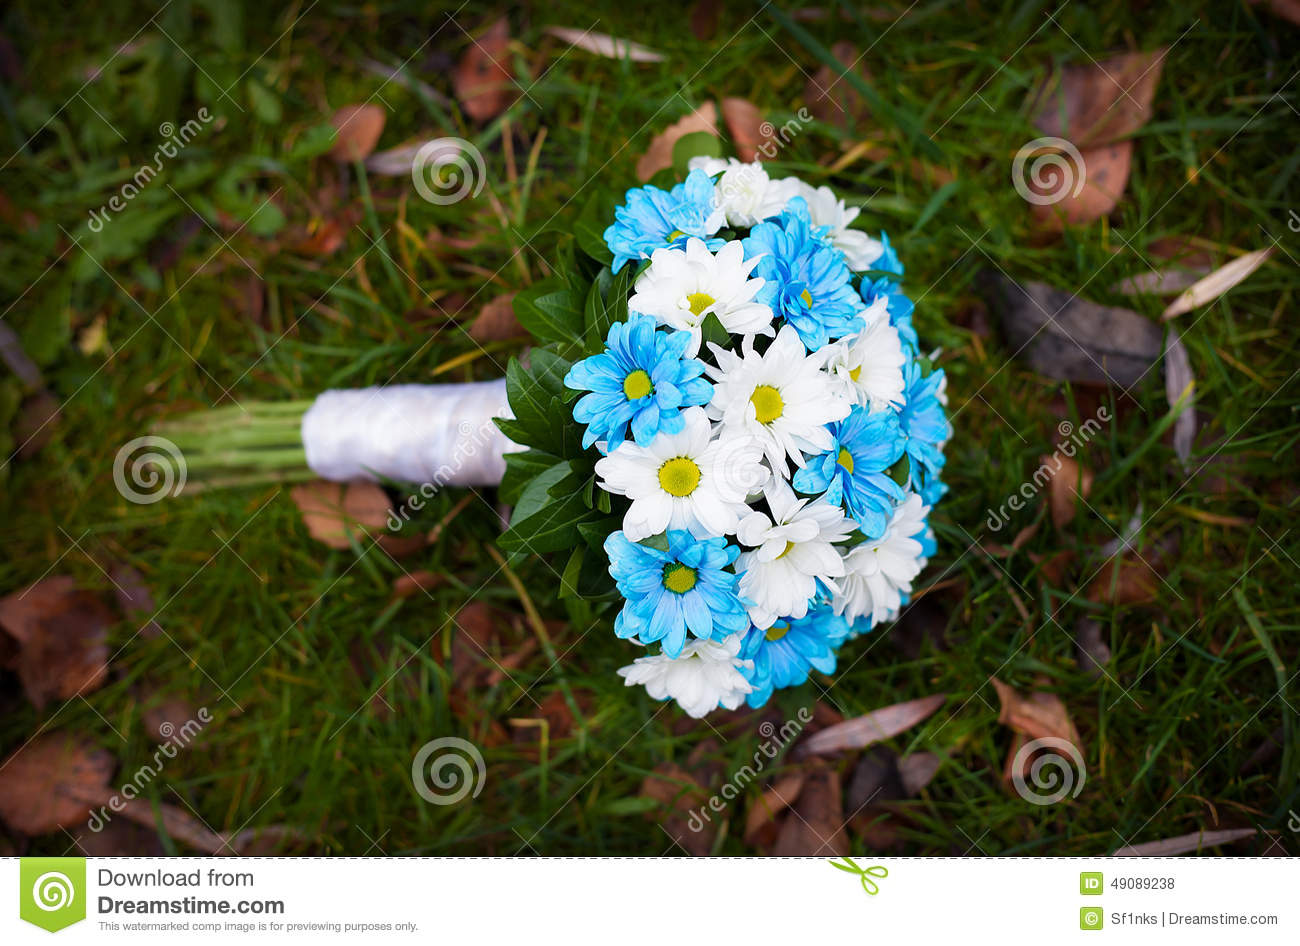 White and blue flowers wedding bouquet stock photo image of green download white and blue flowers wedding bouquet stock photo image of green bloom izmirmasajfo